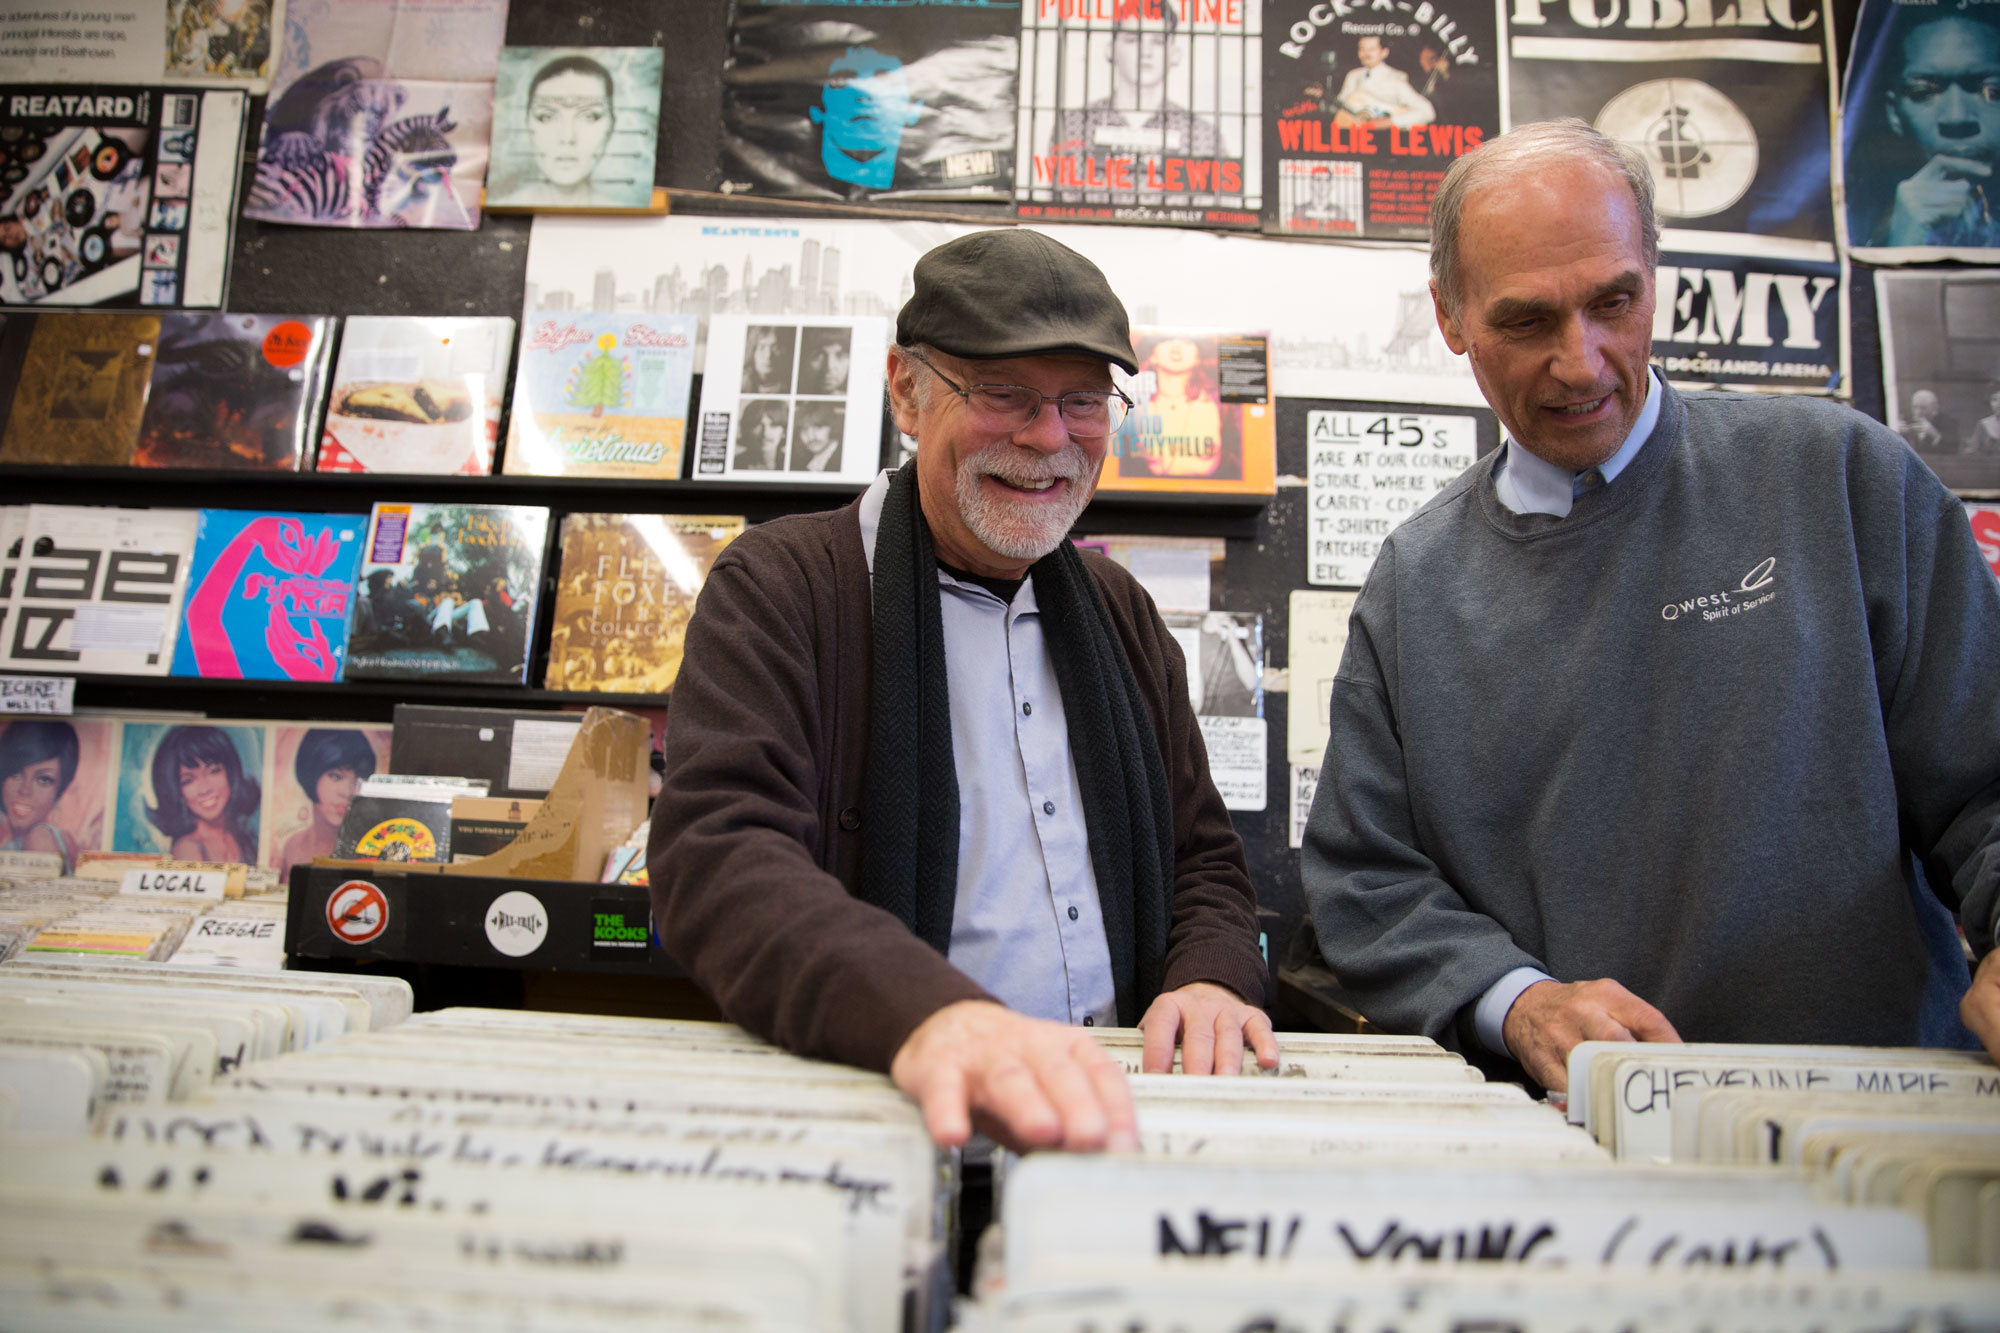 Duane Davis and Dave Stidman, co-owners of Wax Trax since 1978